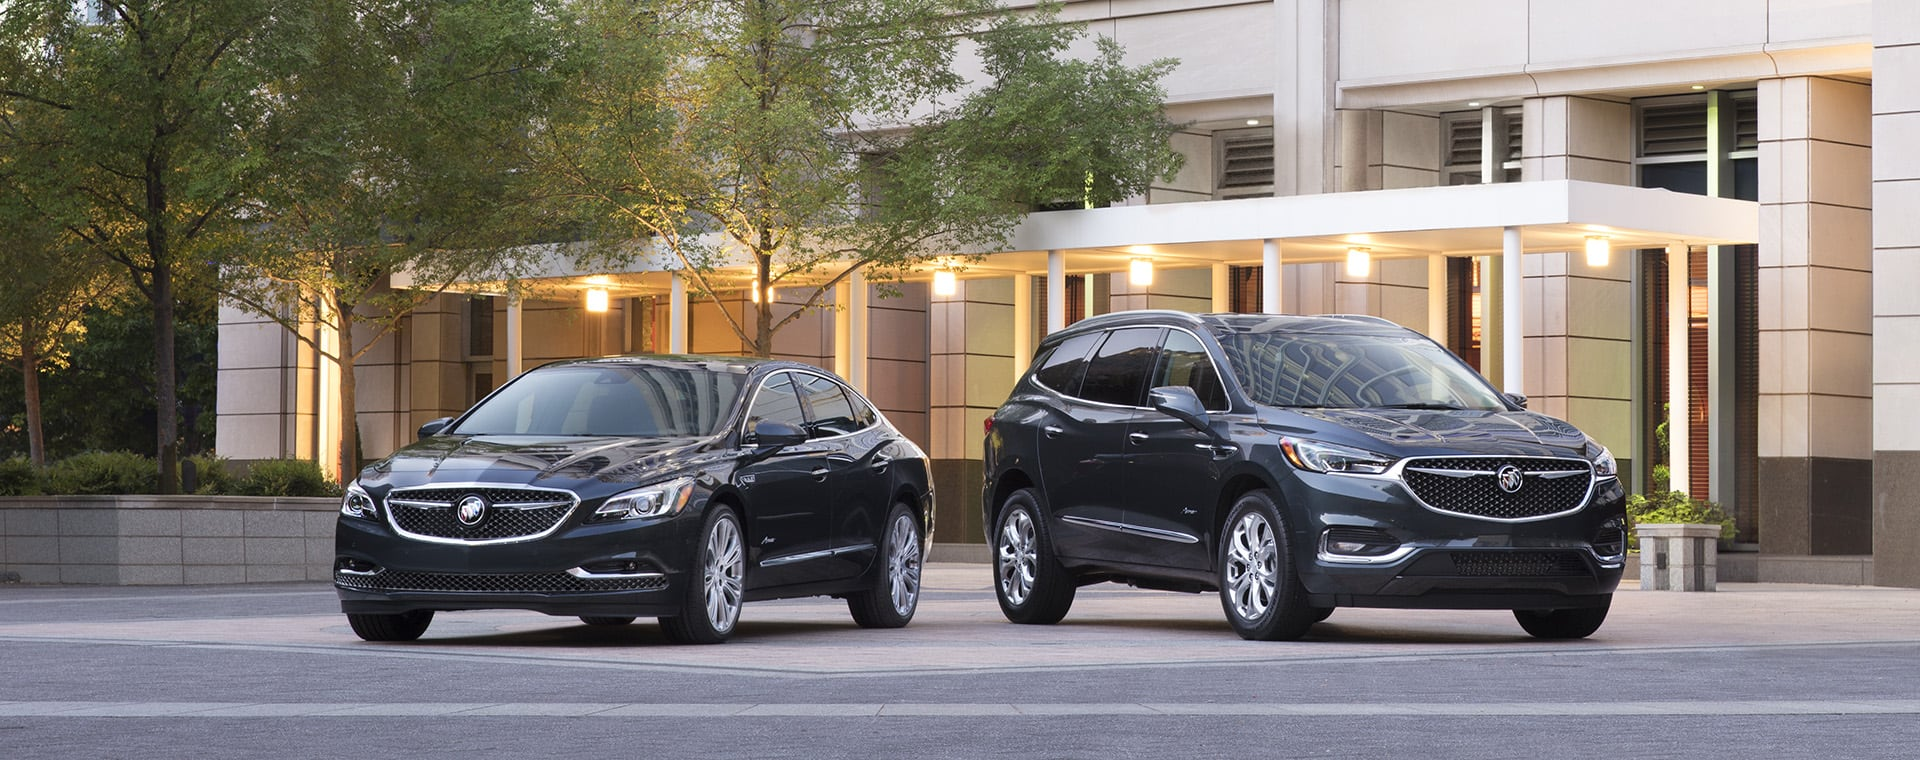 review enclave tasteful crossover rating buick reviews luxury